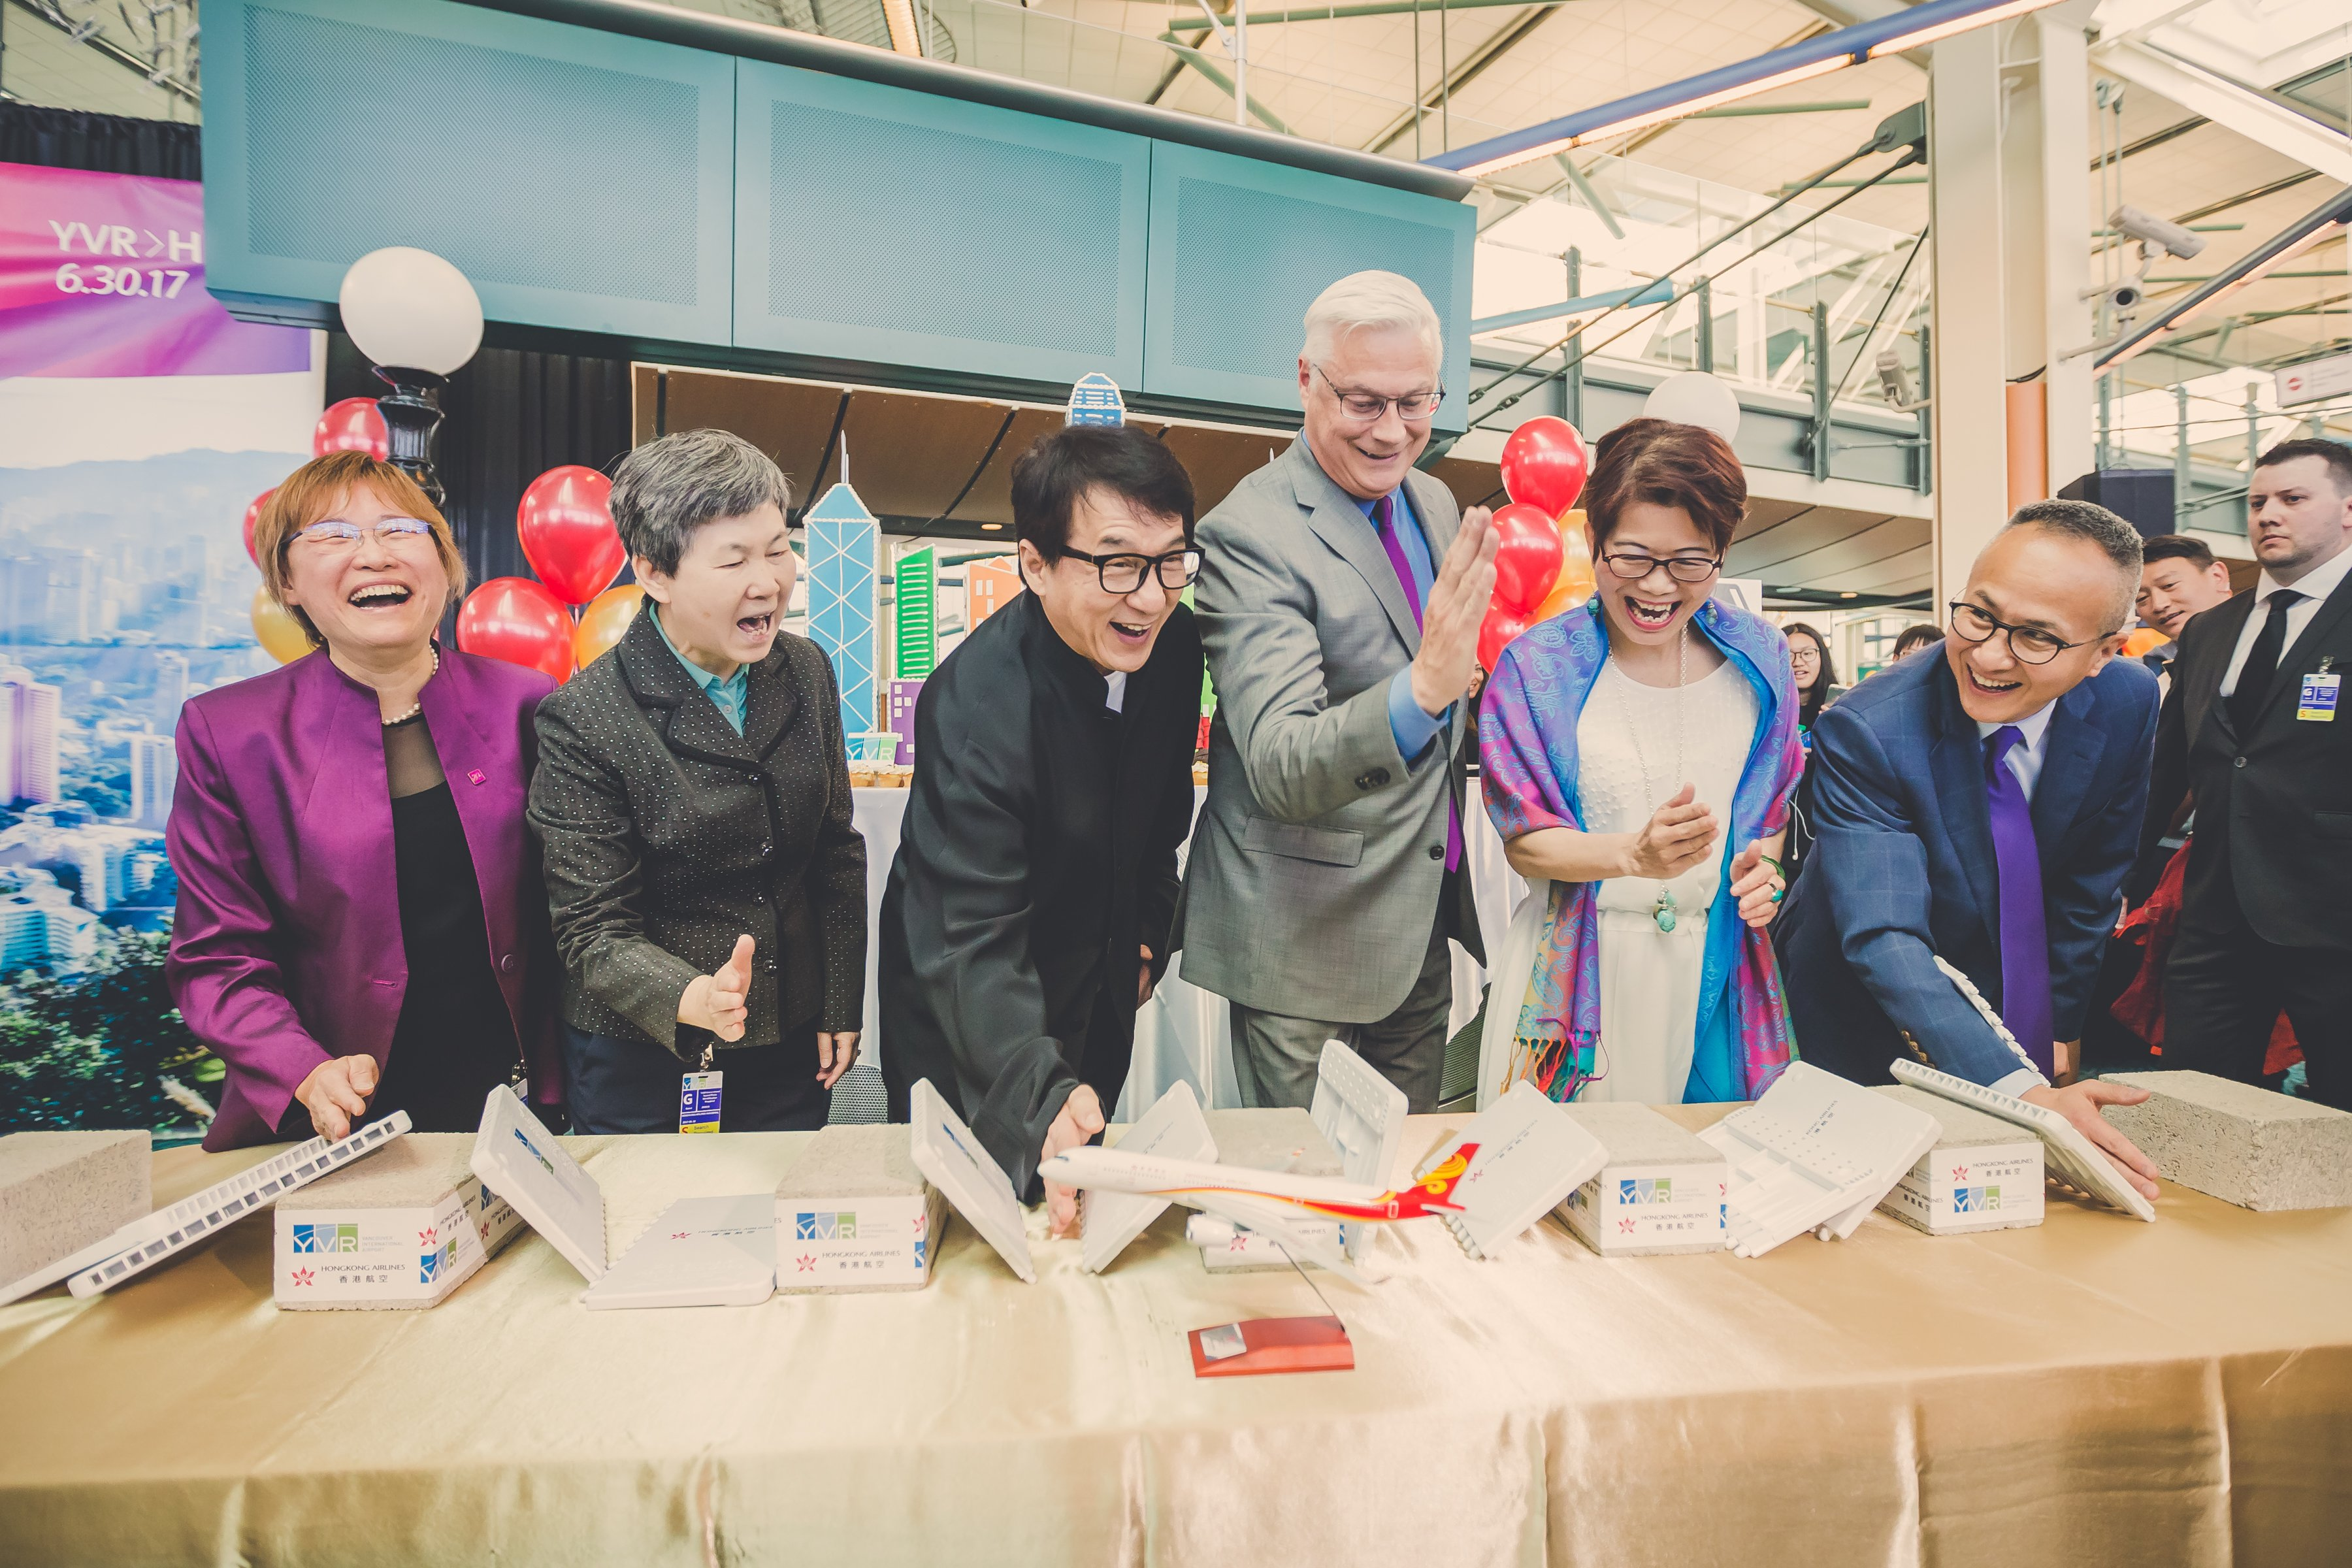 Jackie Chan, YVR CEO Craig and VIPs celebrate Hong Kong Airlines inaugural